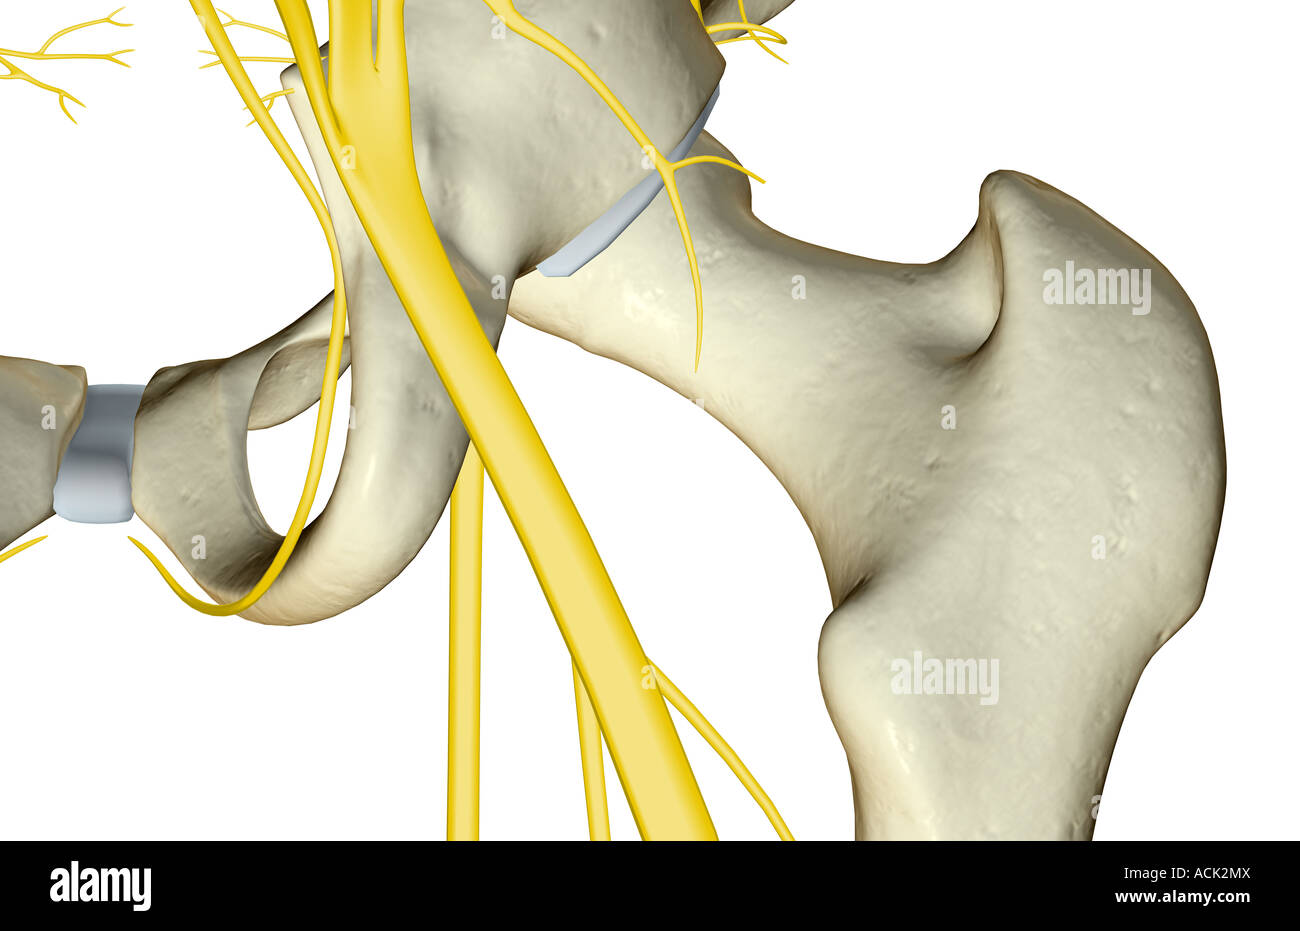 The nerves of the hip Stock Photo: 13175257 - Alamy